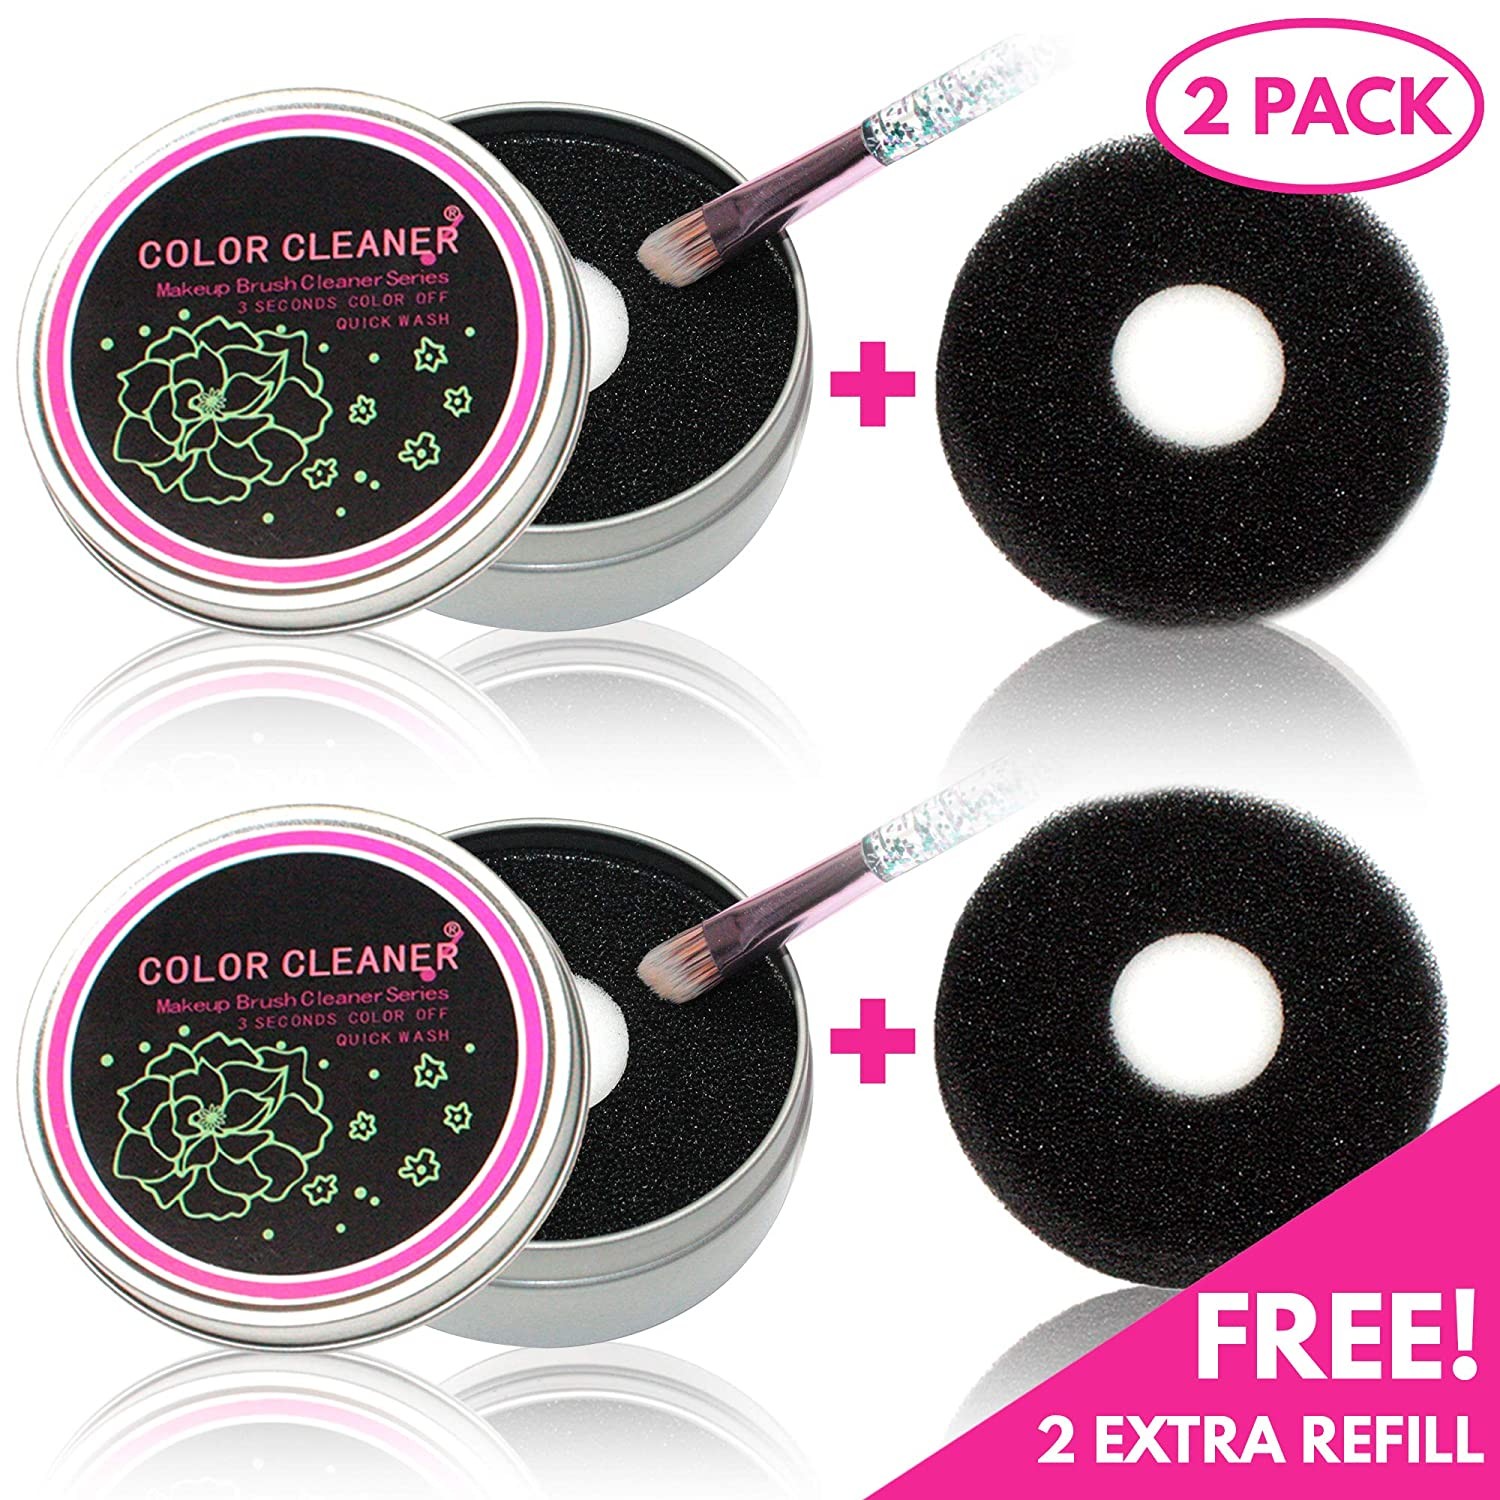 2 Pack Color Removal Sponge, Dry Makeup Brush Cleaner, Makeup Cleaner for Brushes, Color Removal for Brushes, color switch brush cleaner, Makeup Brush Quick Cleaner, 2 Pack+2 Replacements (Black-Dry)